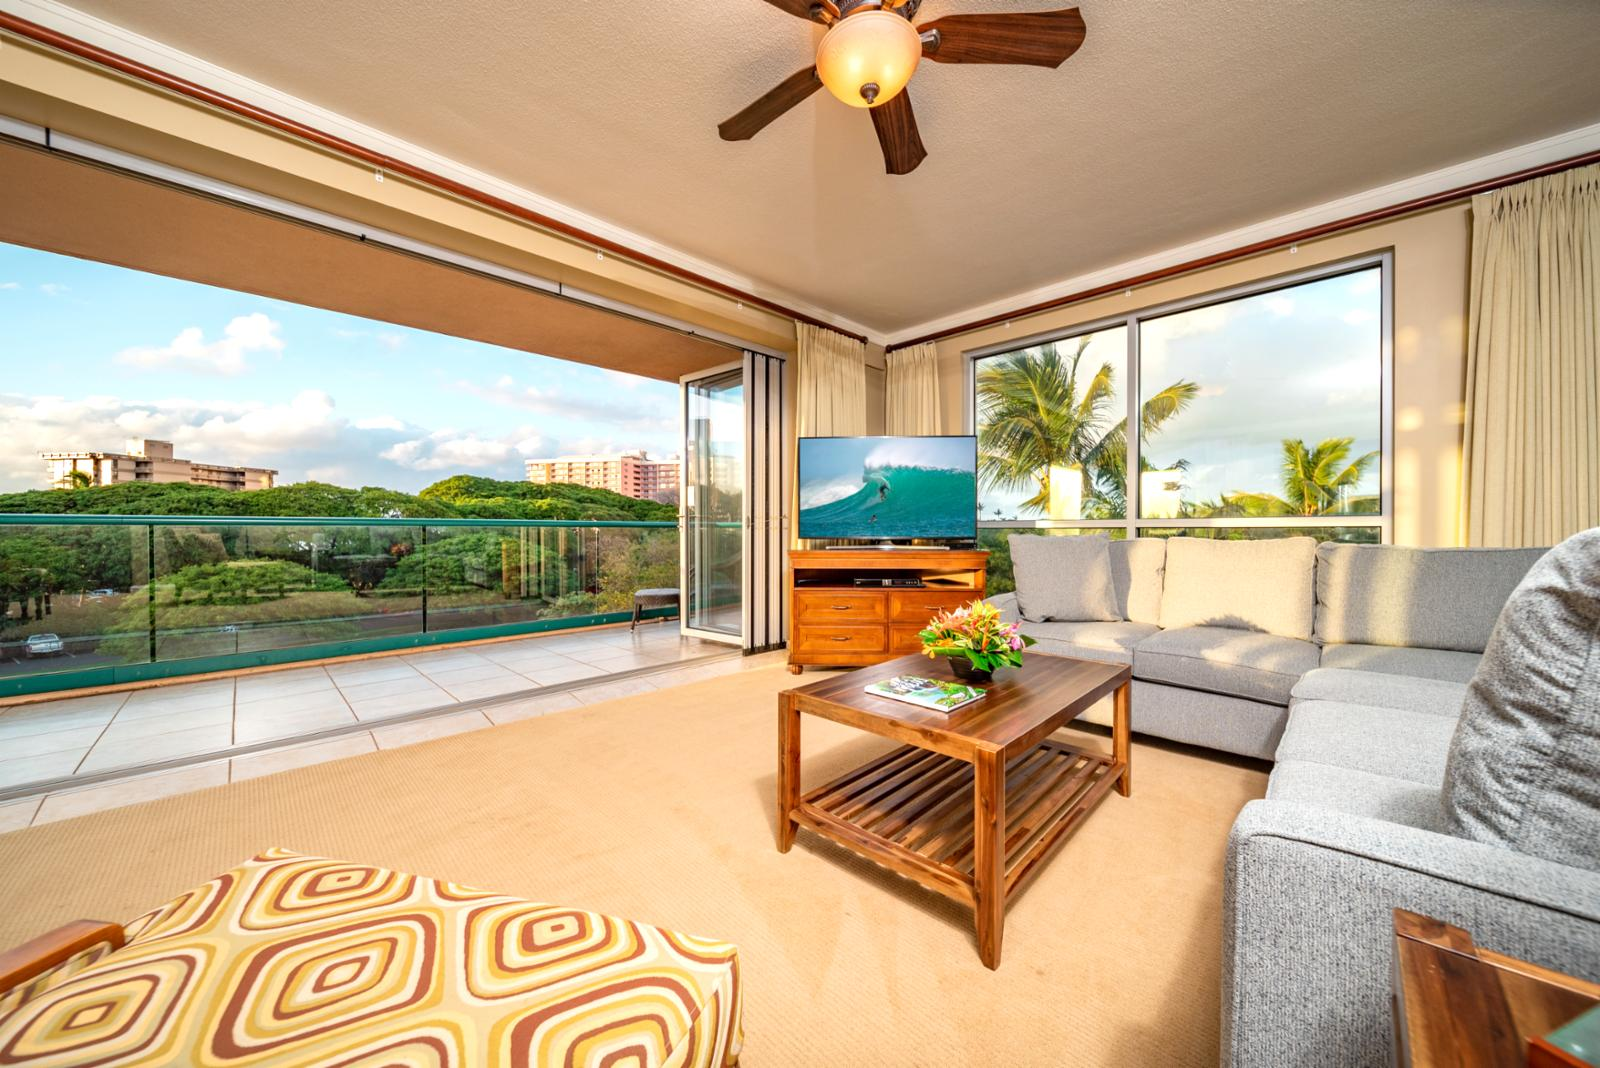 Beautiful sweeping views and tons of additional natural lighting